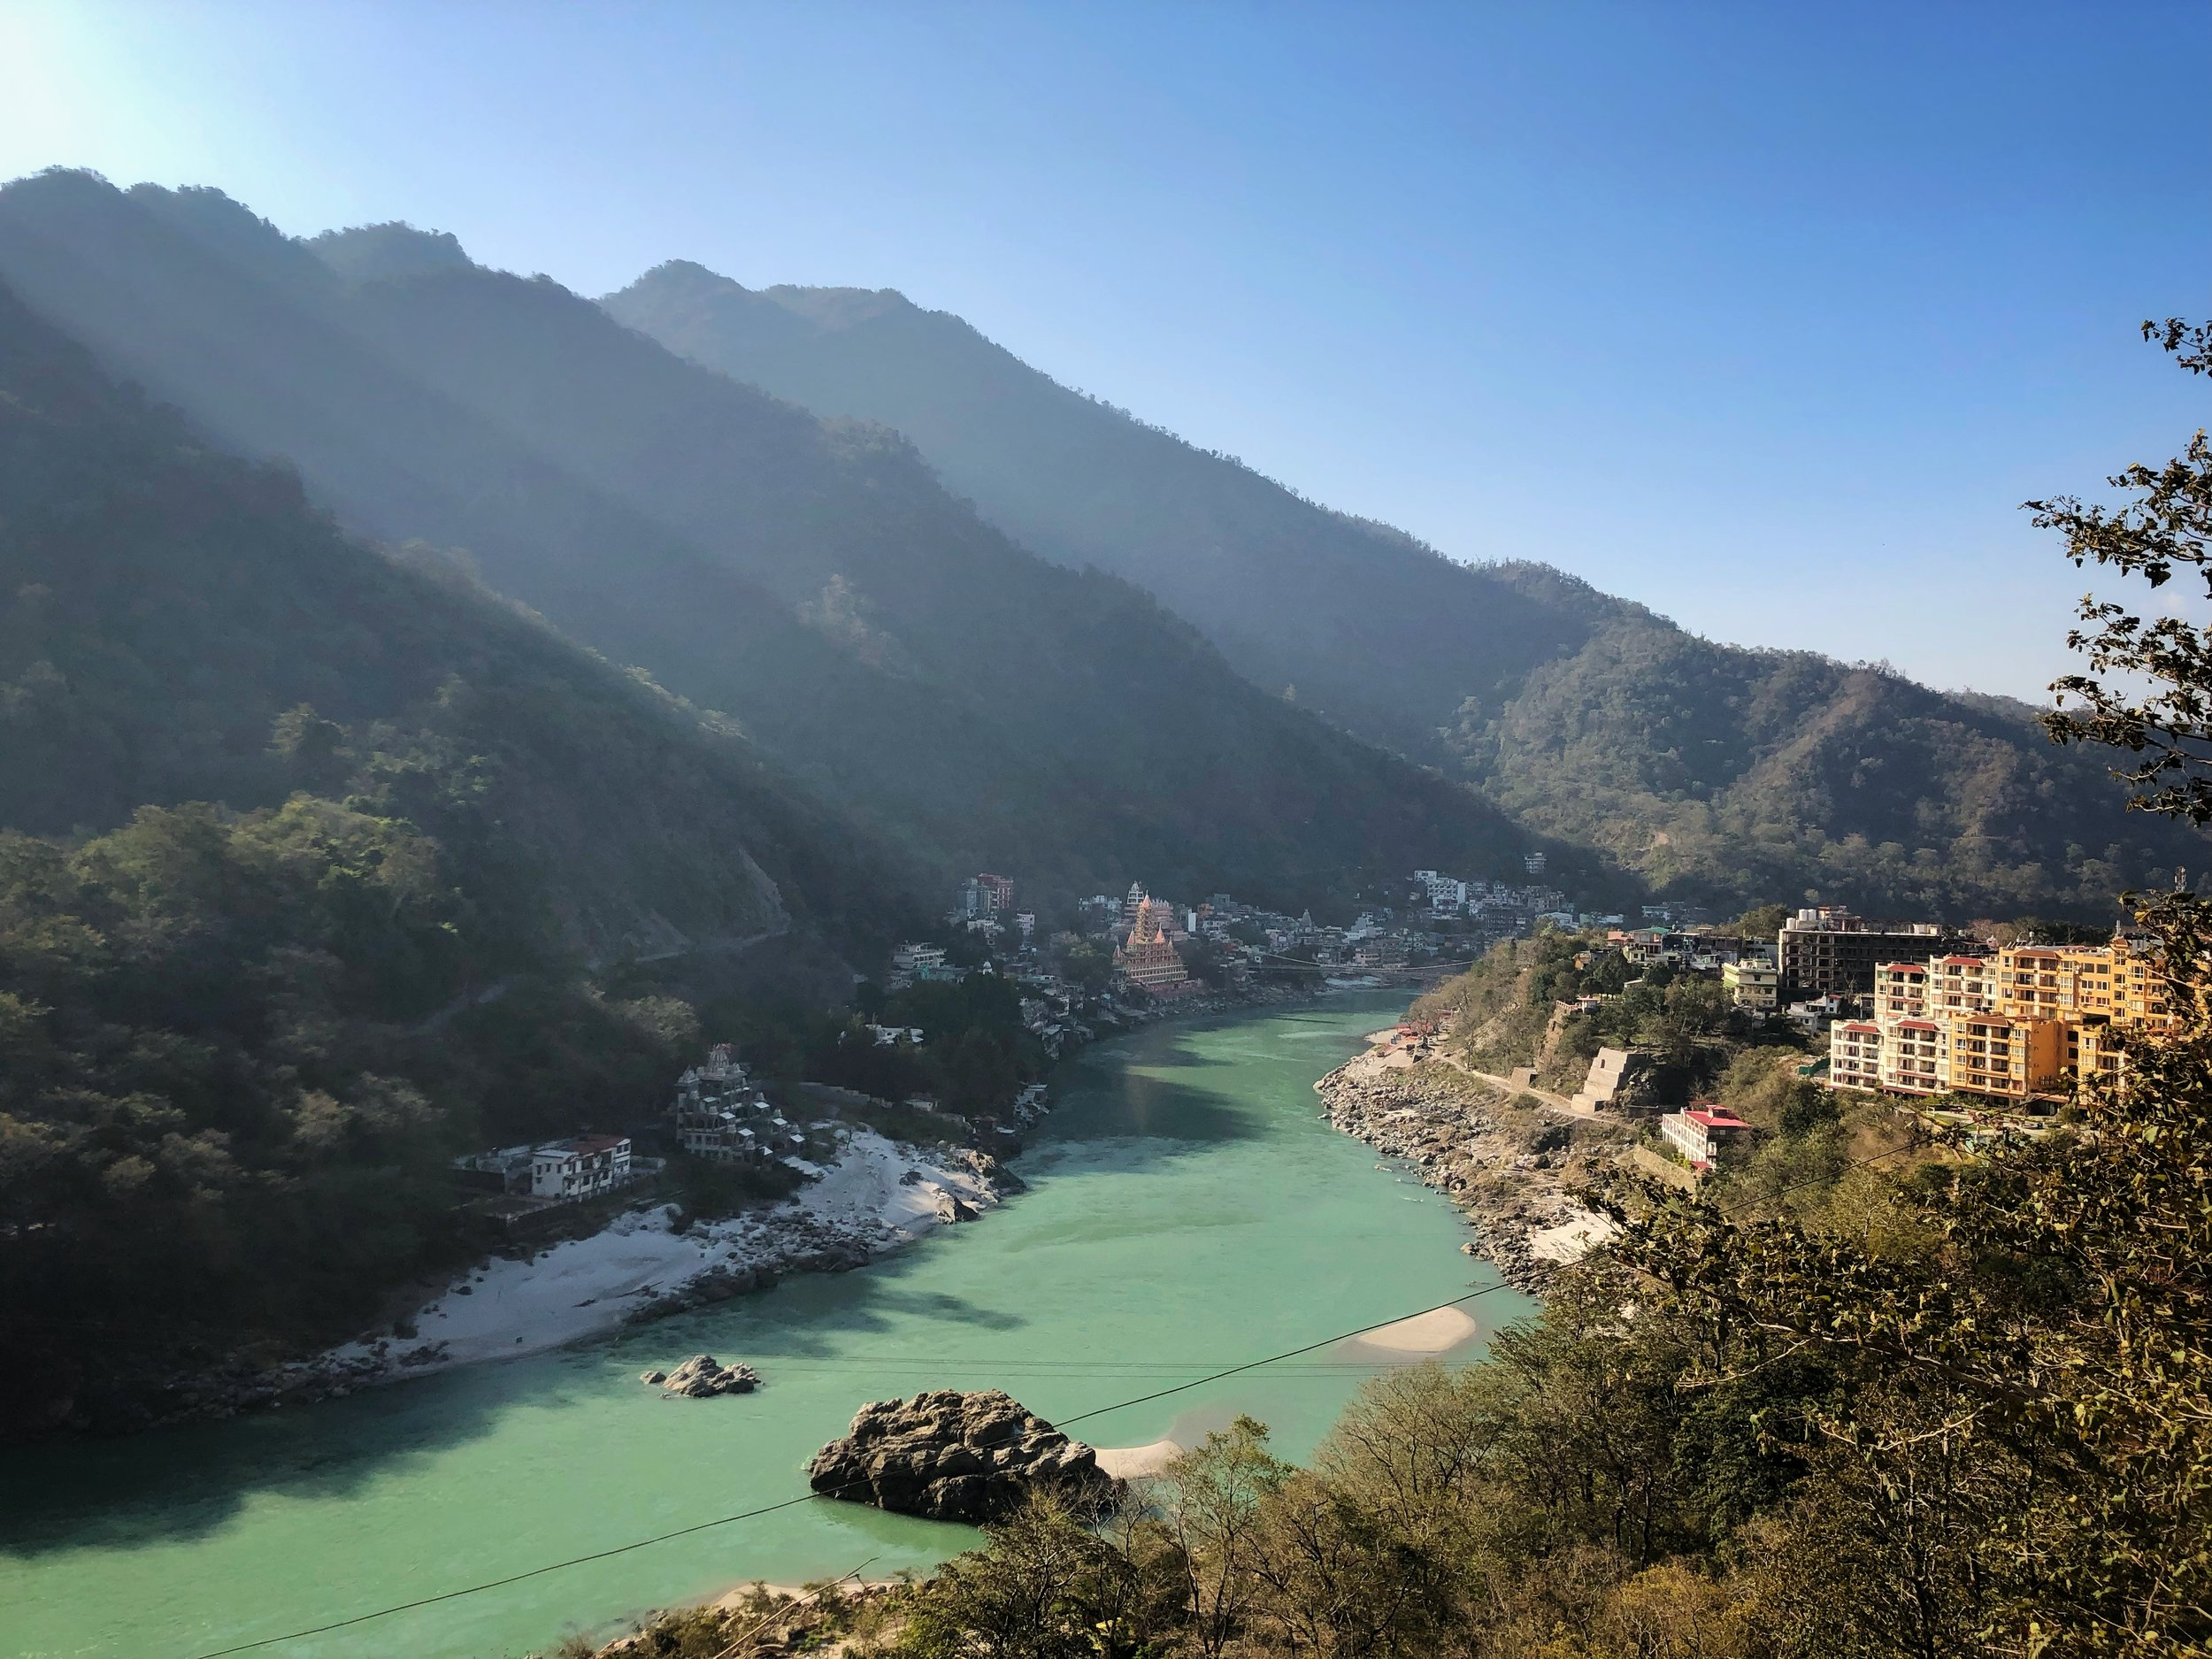 The Holy Ganges River at Rishikesh near the source of the river.